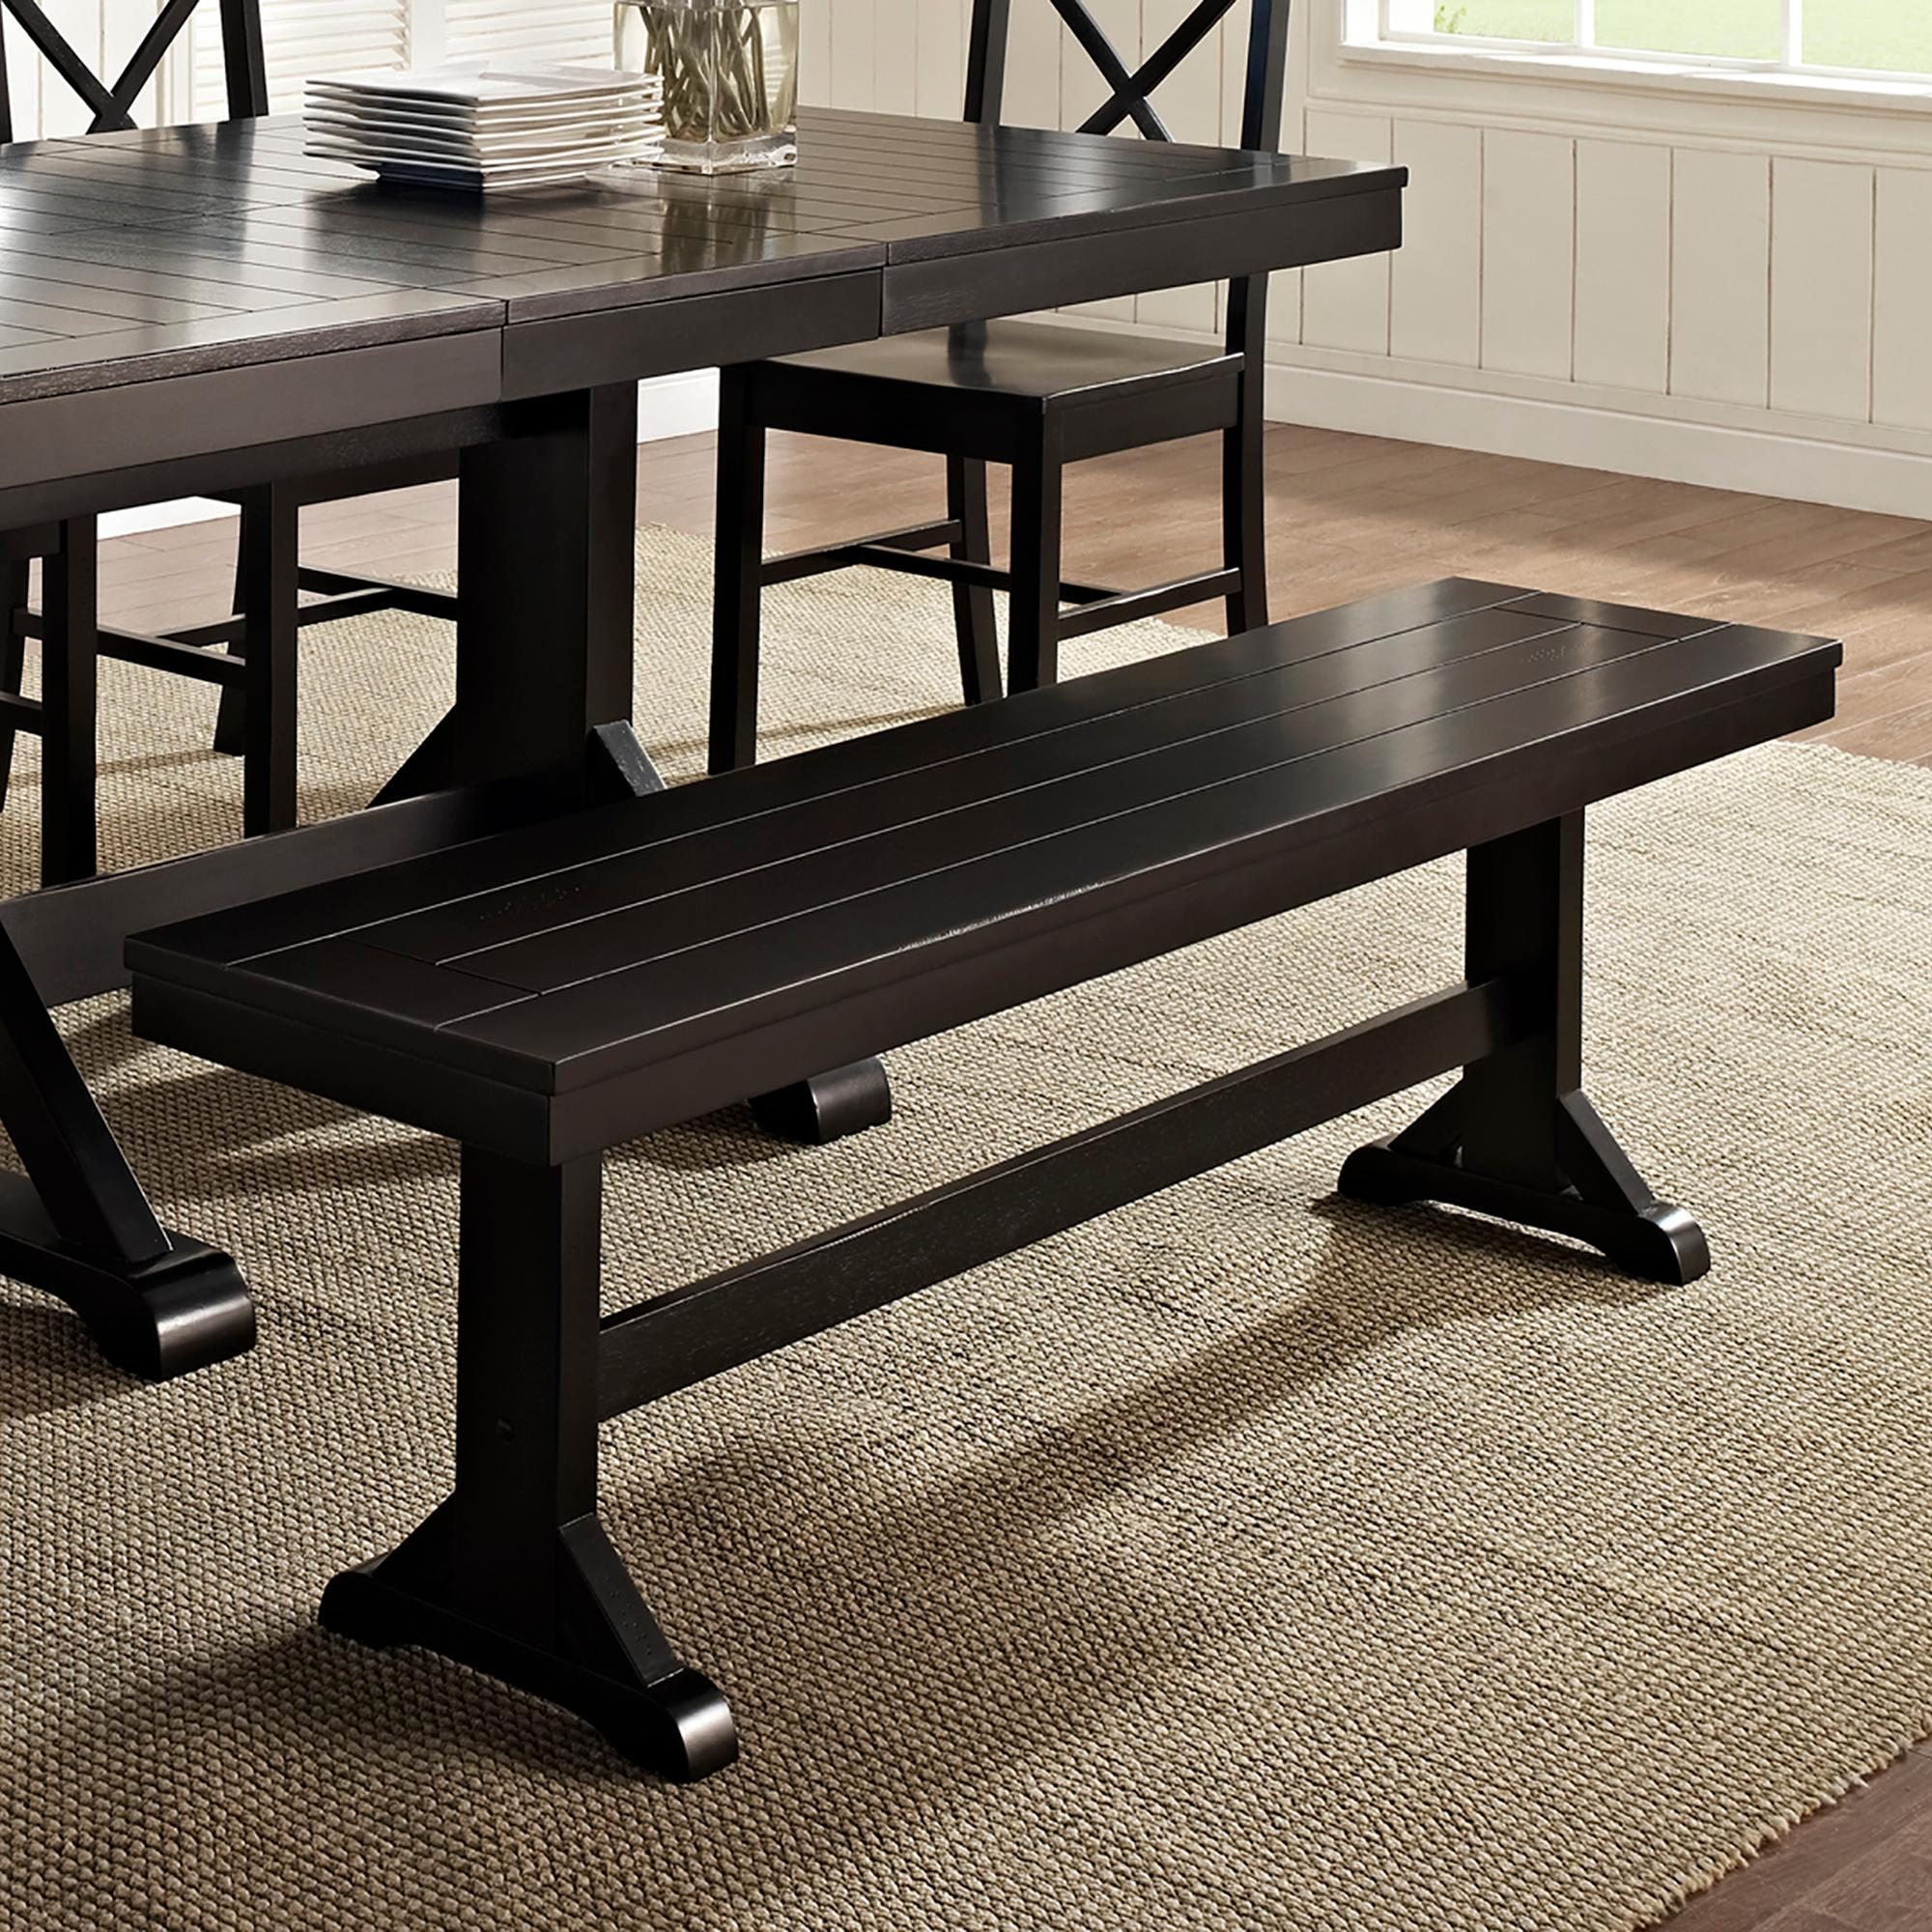 Dining Room With Bench: WE Furniture Solid Wood Black Dining Bench